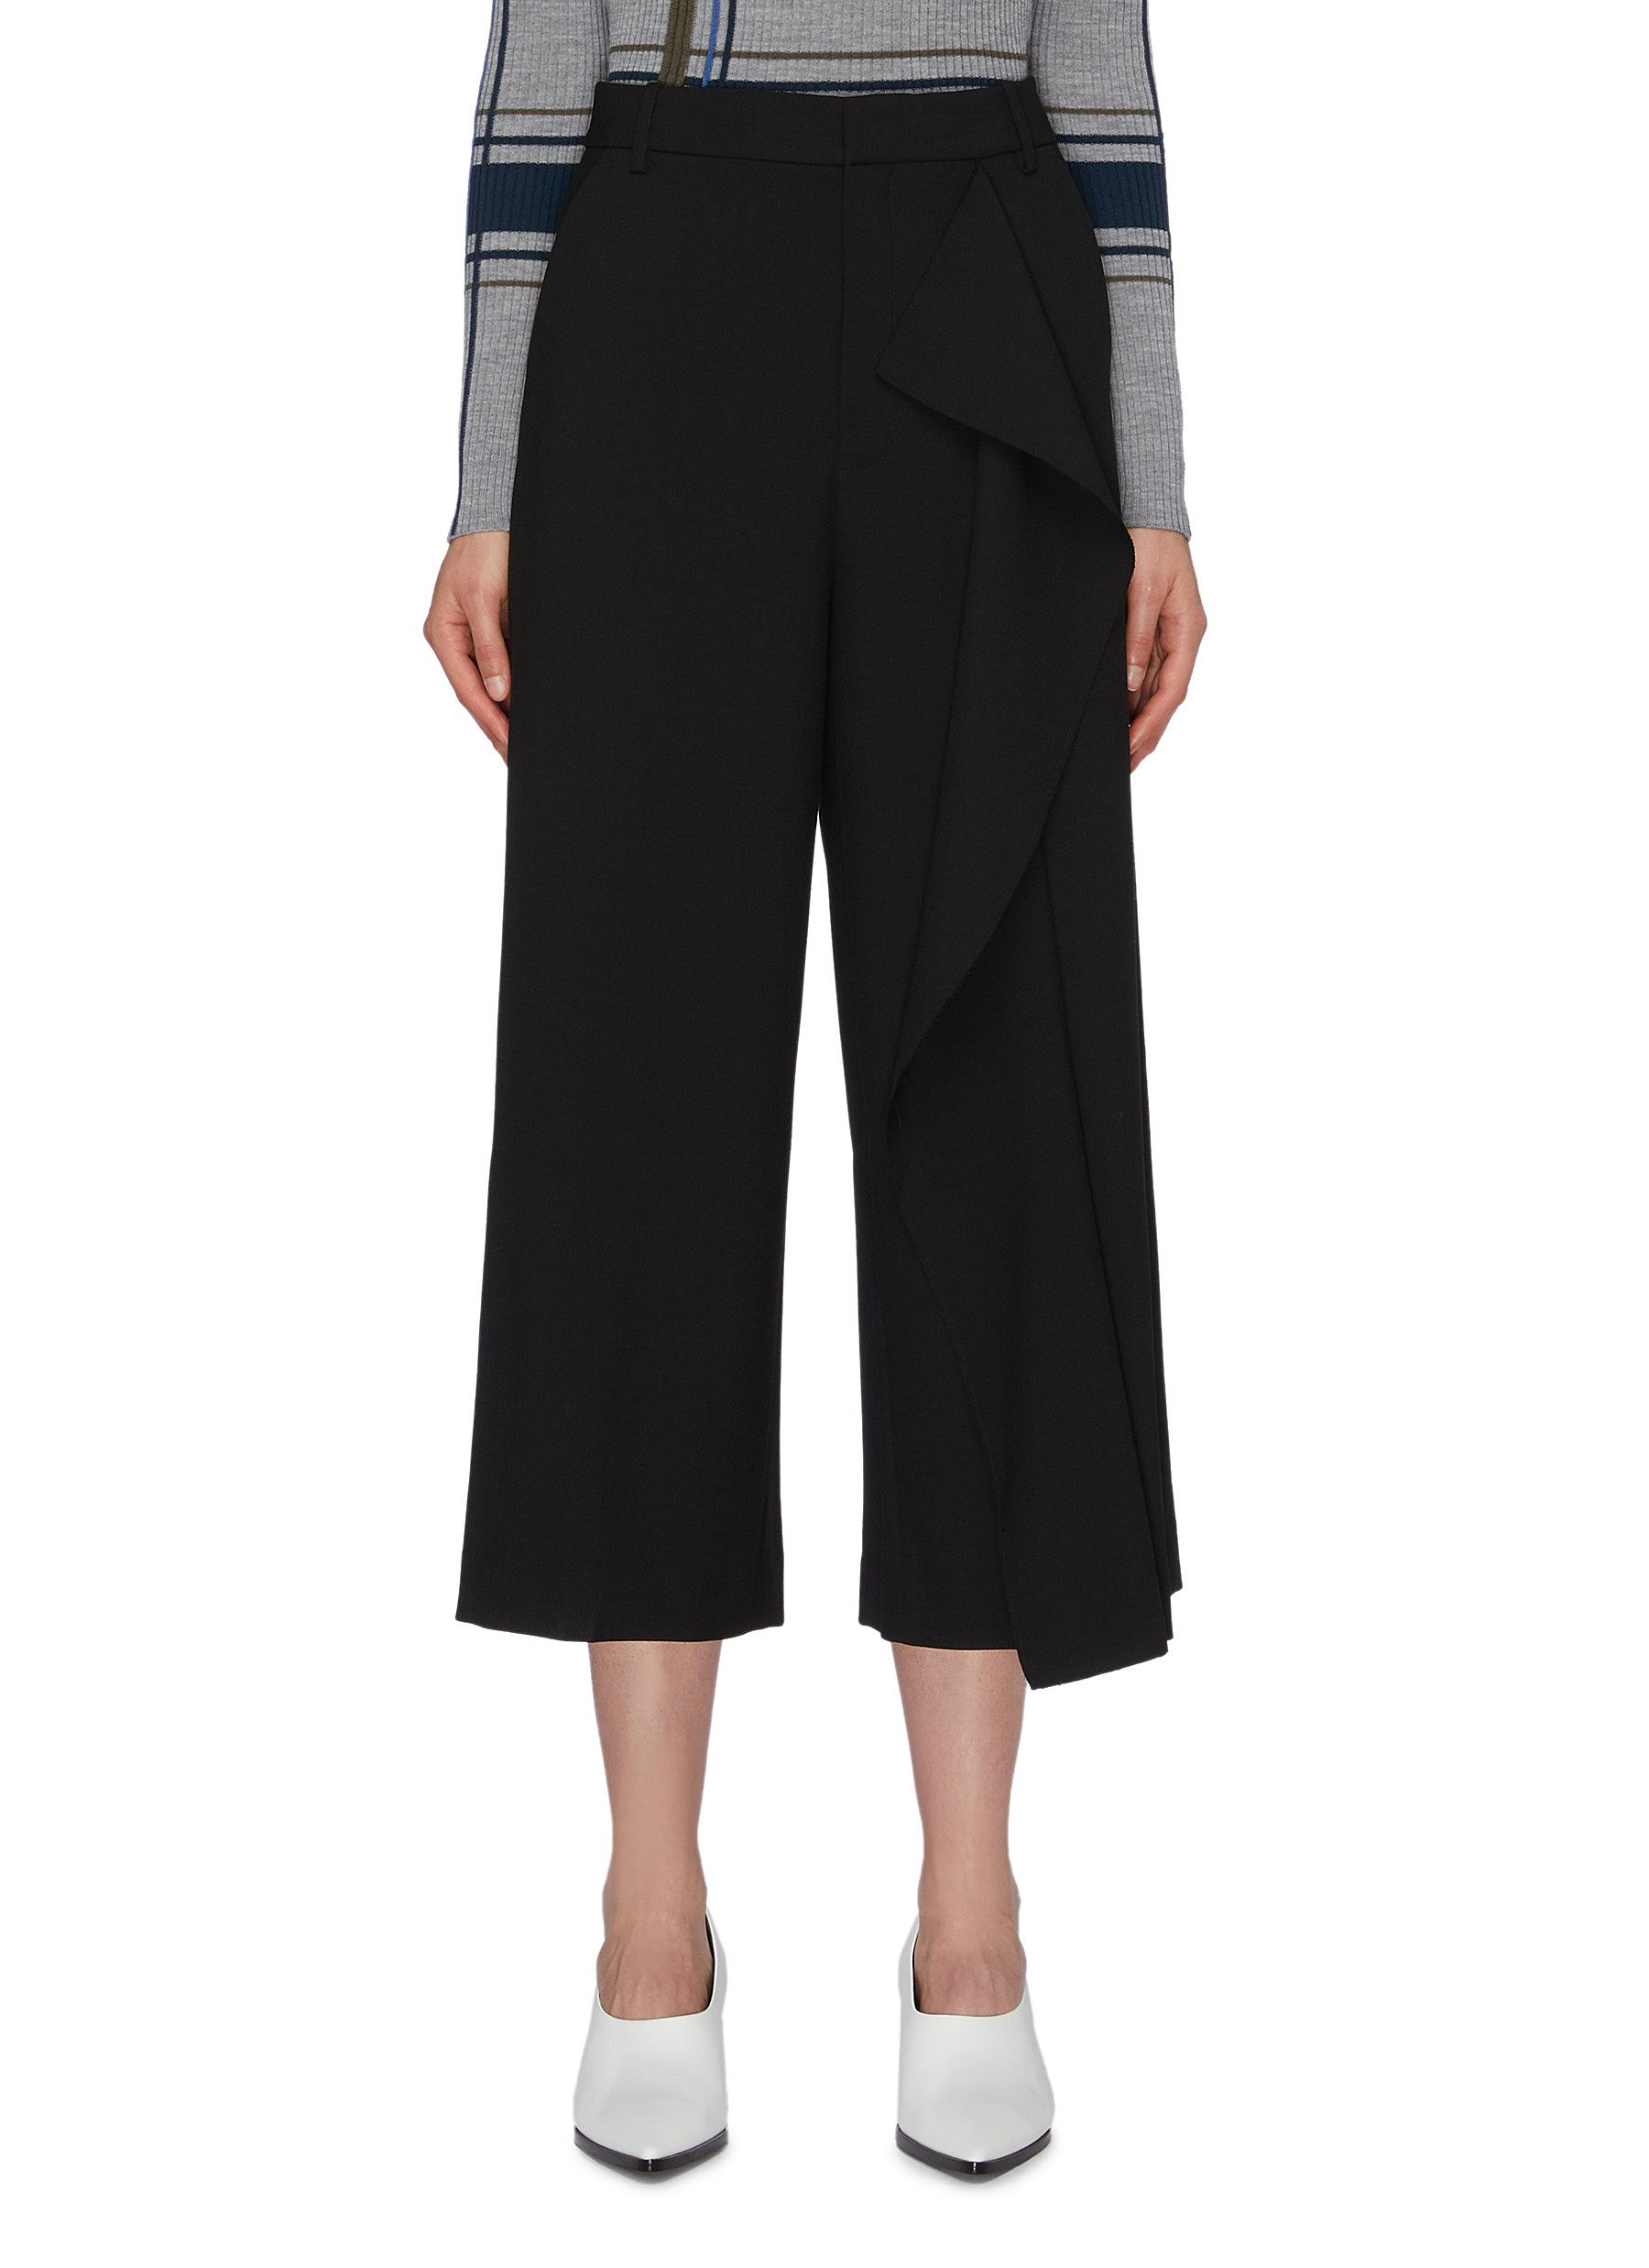 Drape panel culottes by Portspure